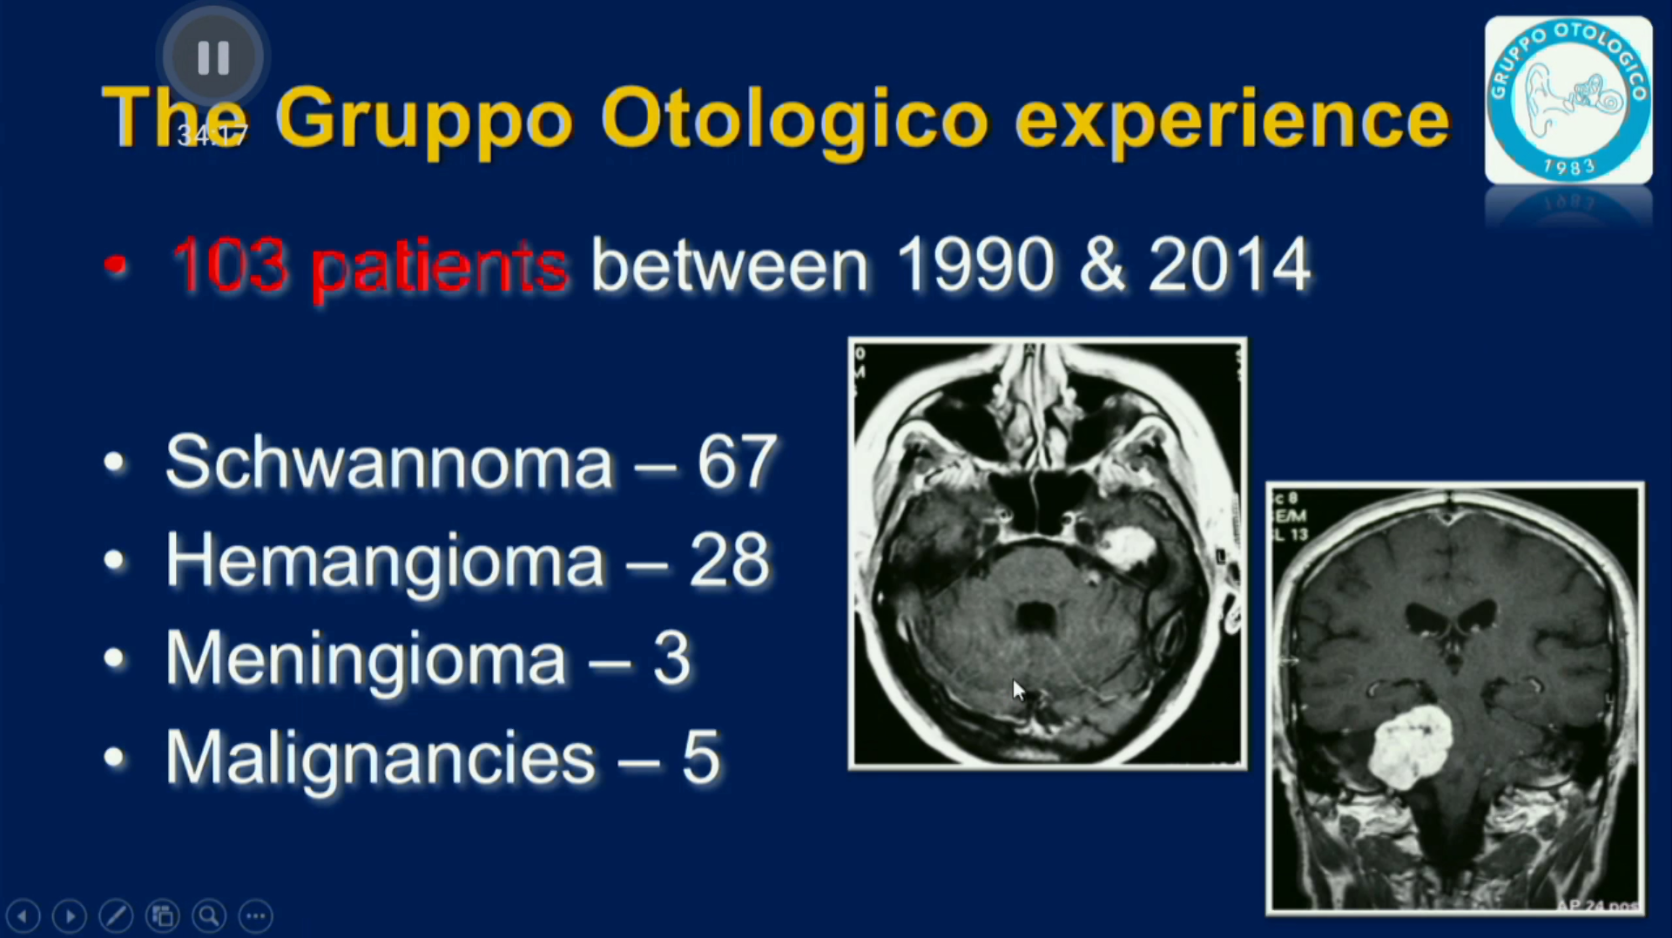 Facial Nerve Tumors - 06 - Gruppo Otologico Data and Results